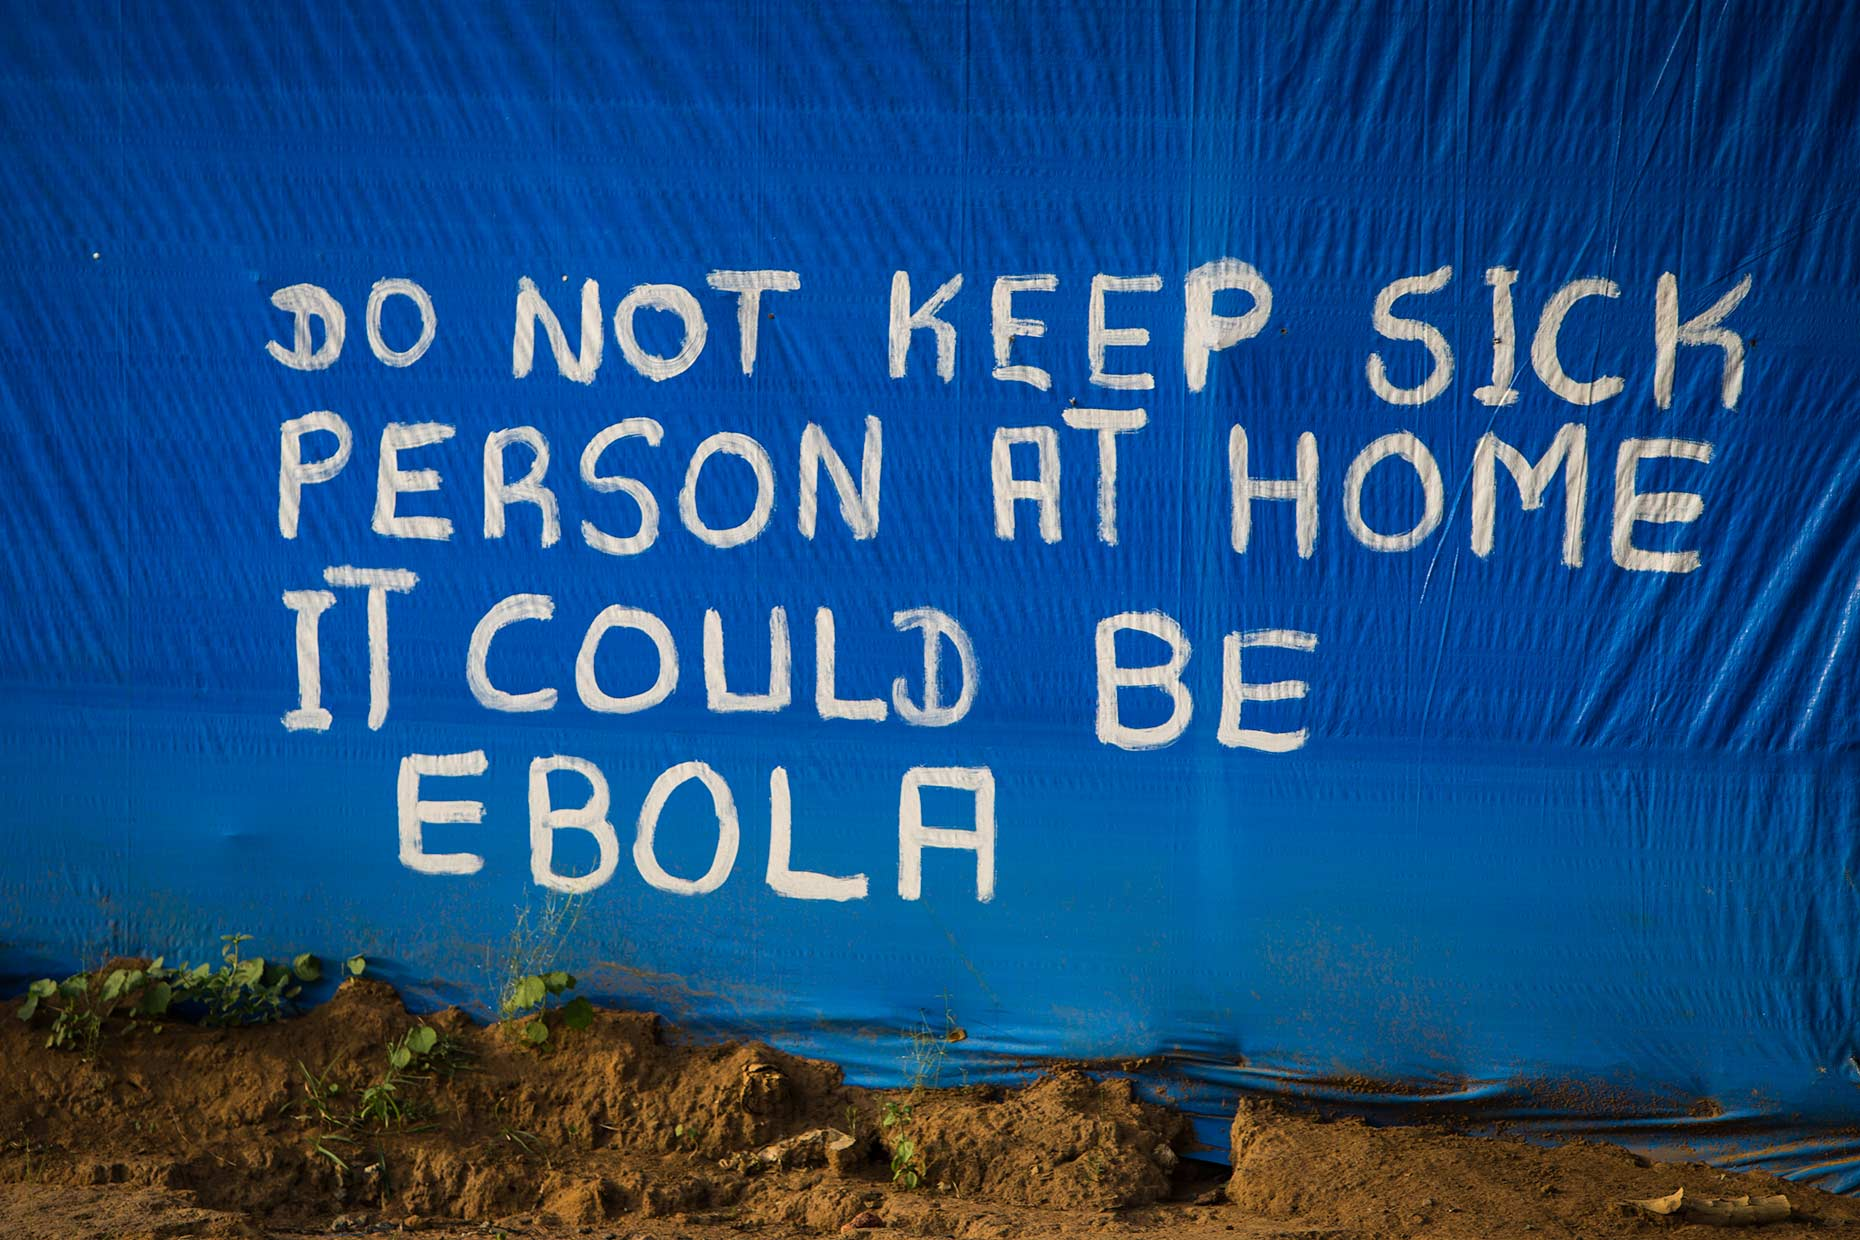 Hand painted warning of the dangers of the Ebola virus in Liberia